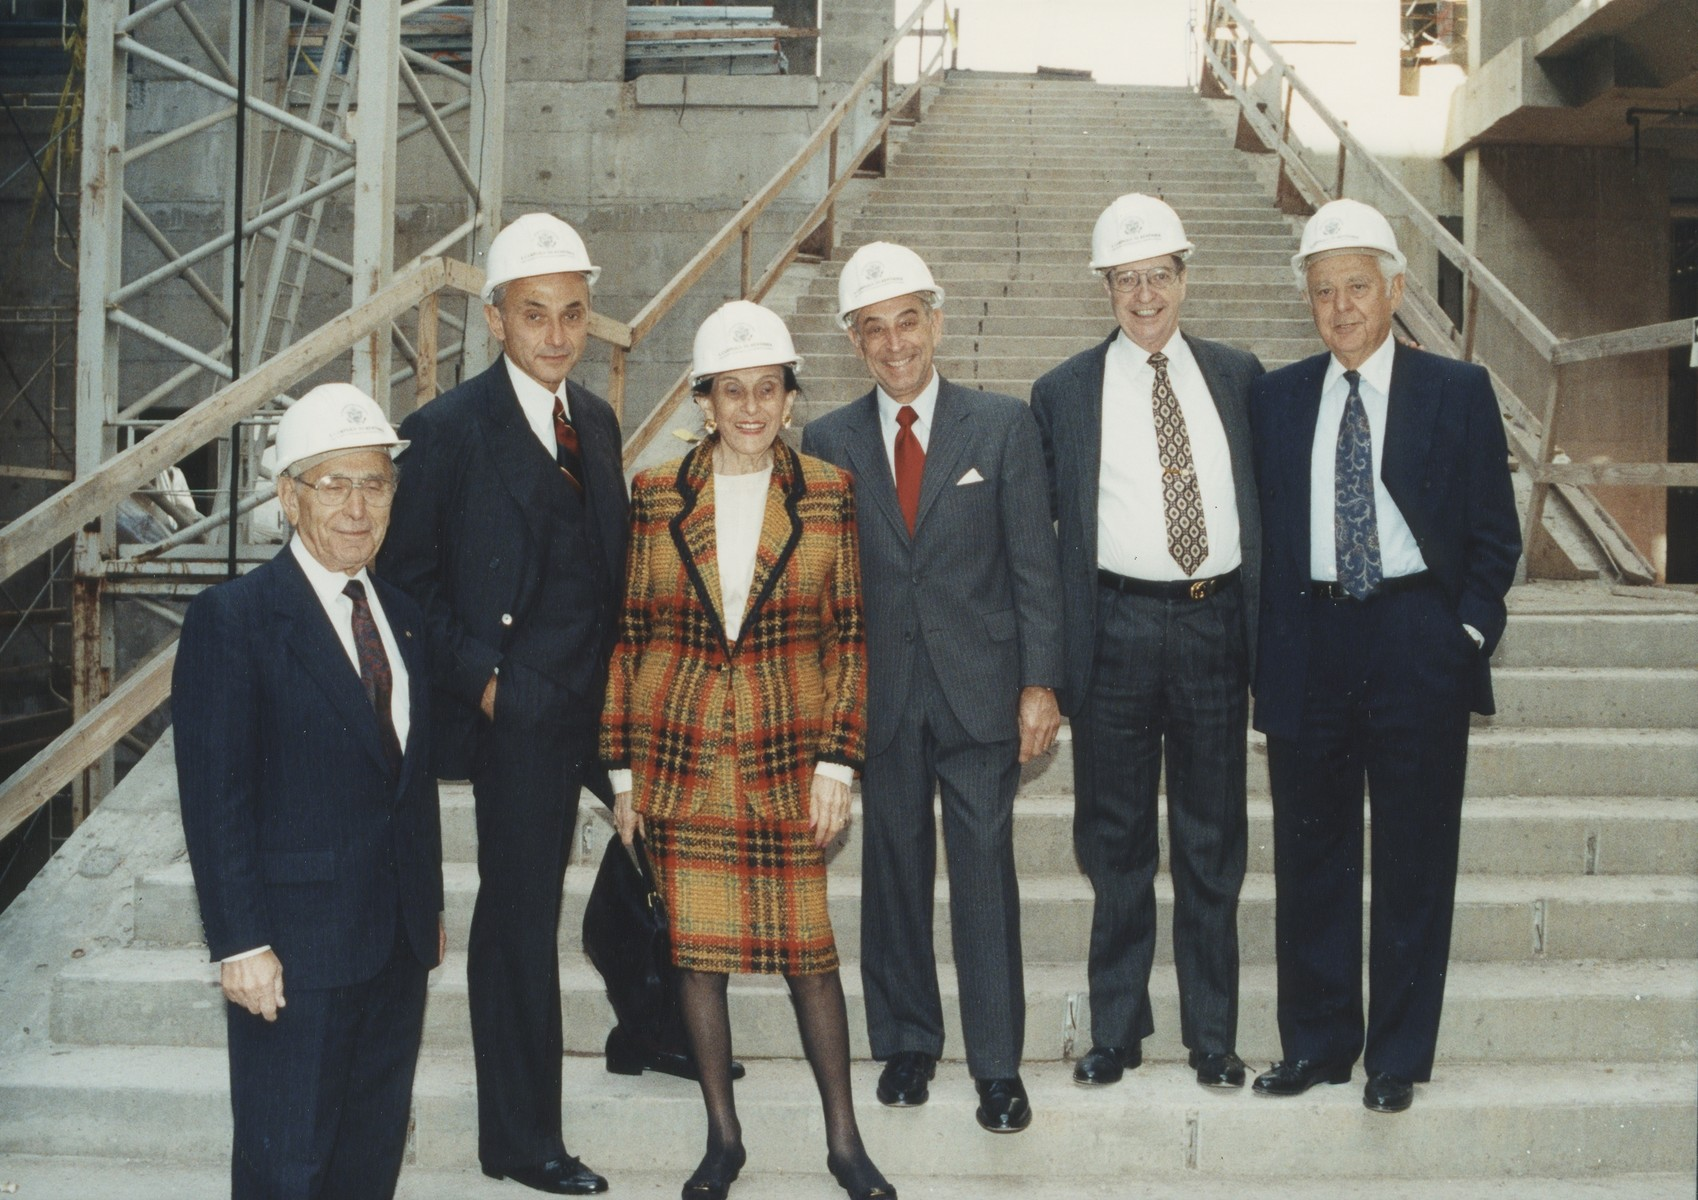 Standing before the grand staircase in the unfinished Hall of Witness are, from left, National Campaign Chairman Miles Lerman; Leslie Wexner; his mother, Bella Wexner; Council Chairman Harvey M. Meyerhoff; Albert Ratner; and Albert (Sonny) Abramson. The Wexner Family donated $5 million to underwrite the Learning Center on September 20, 1991.